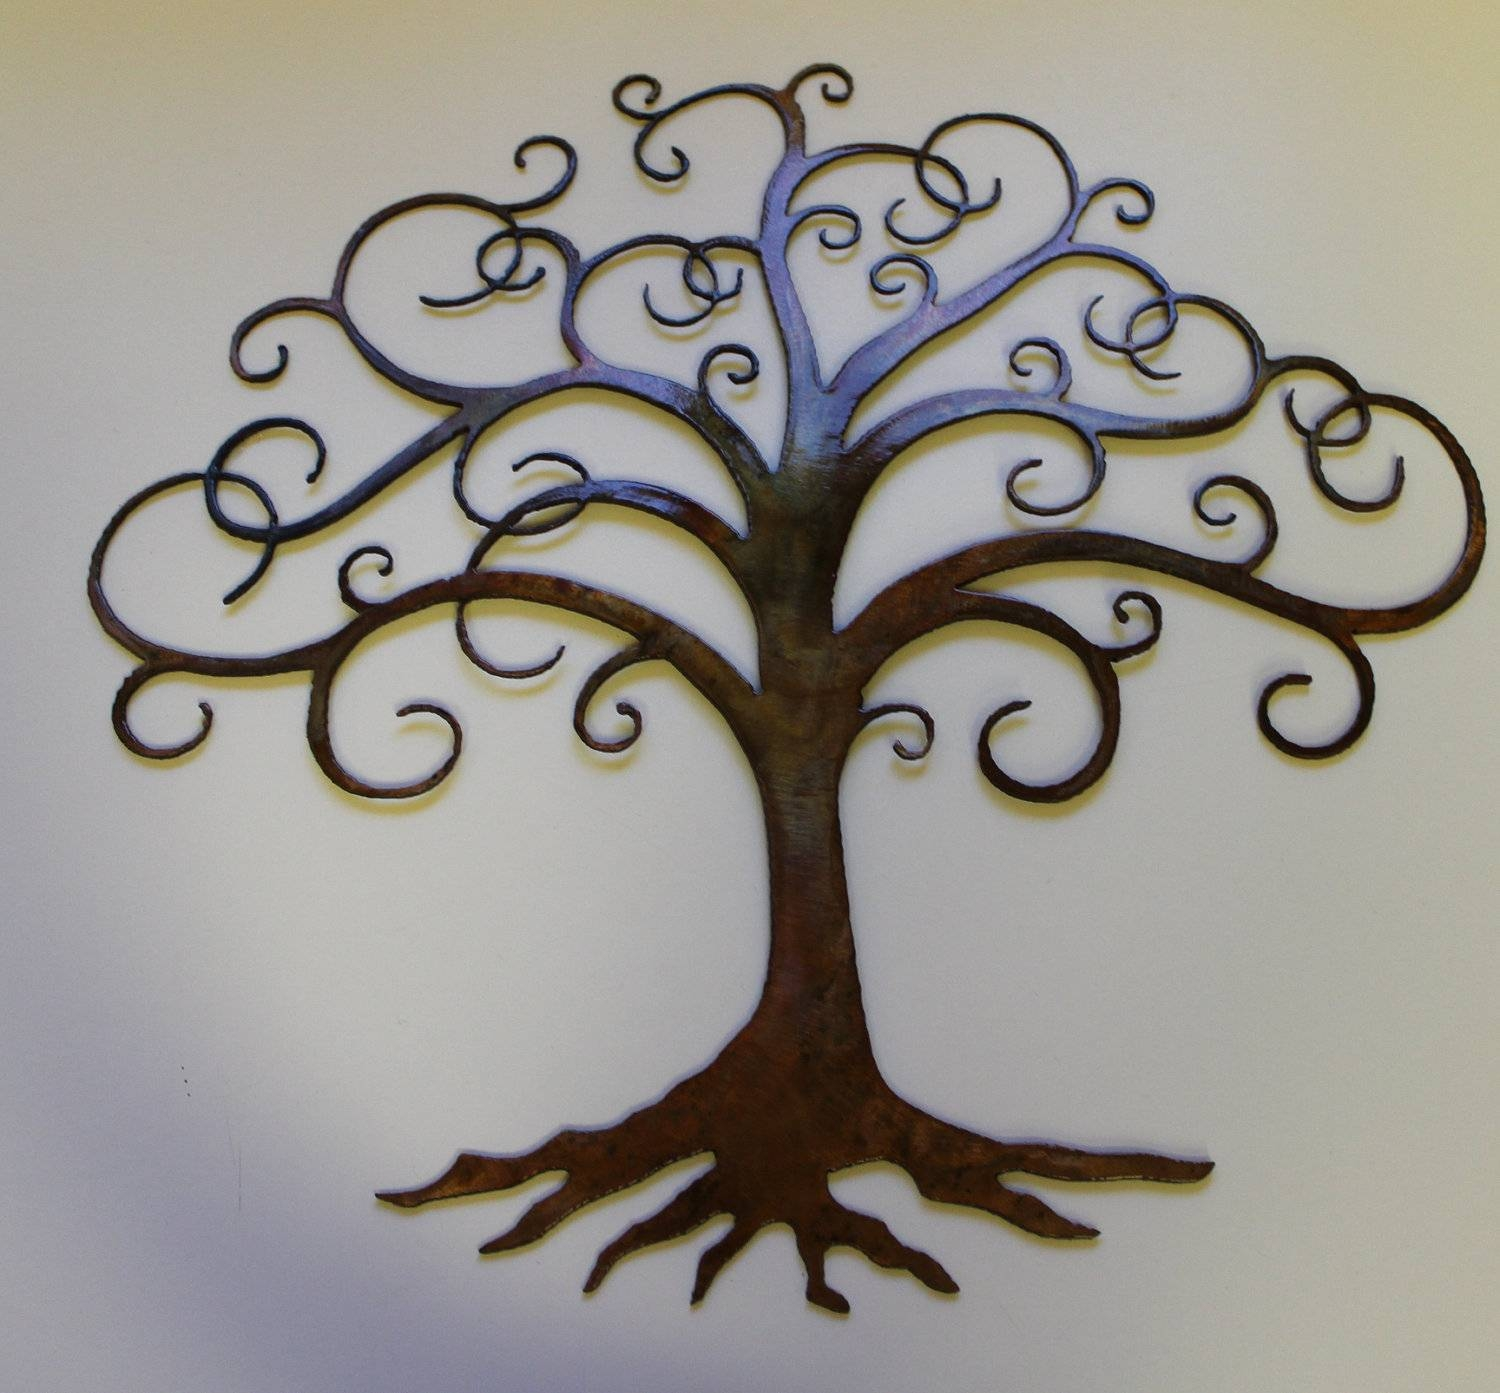 Wall Art Designs: Metal Wall Art Trees Breathtaking Large Metal Pertaining To Current Large Metal Wall Art Decor (View 6 of 20)